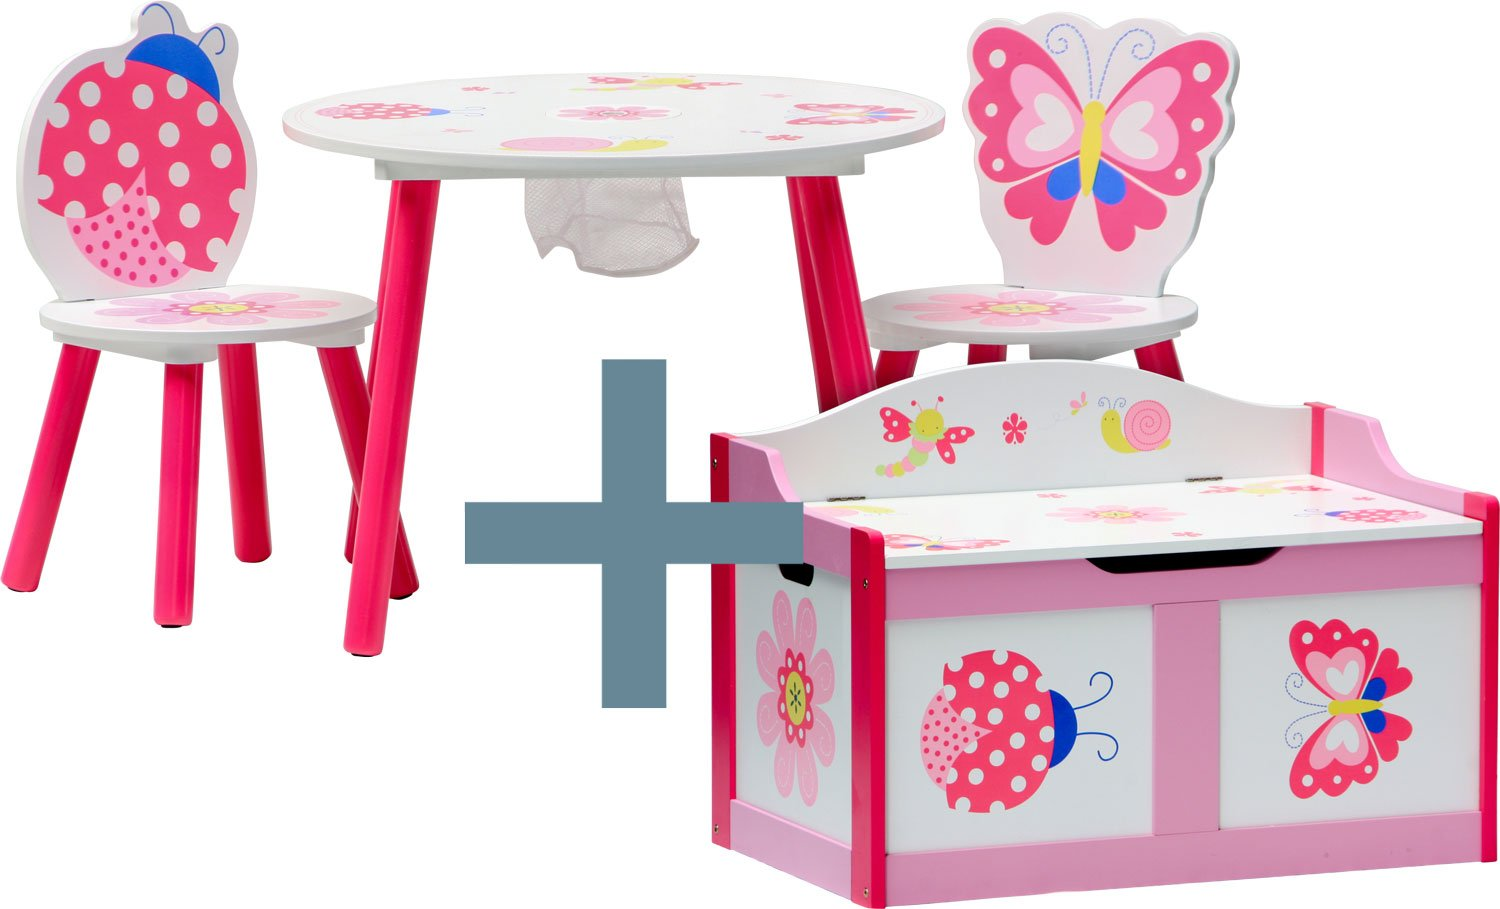 IB-Style - Children's seating area Papillon |Toybox | bench nursery furniture kids